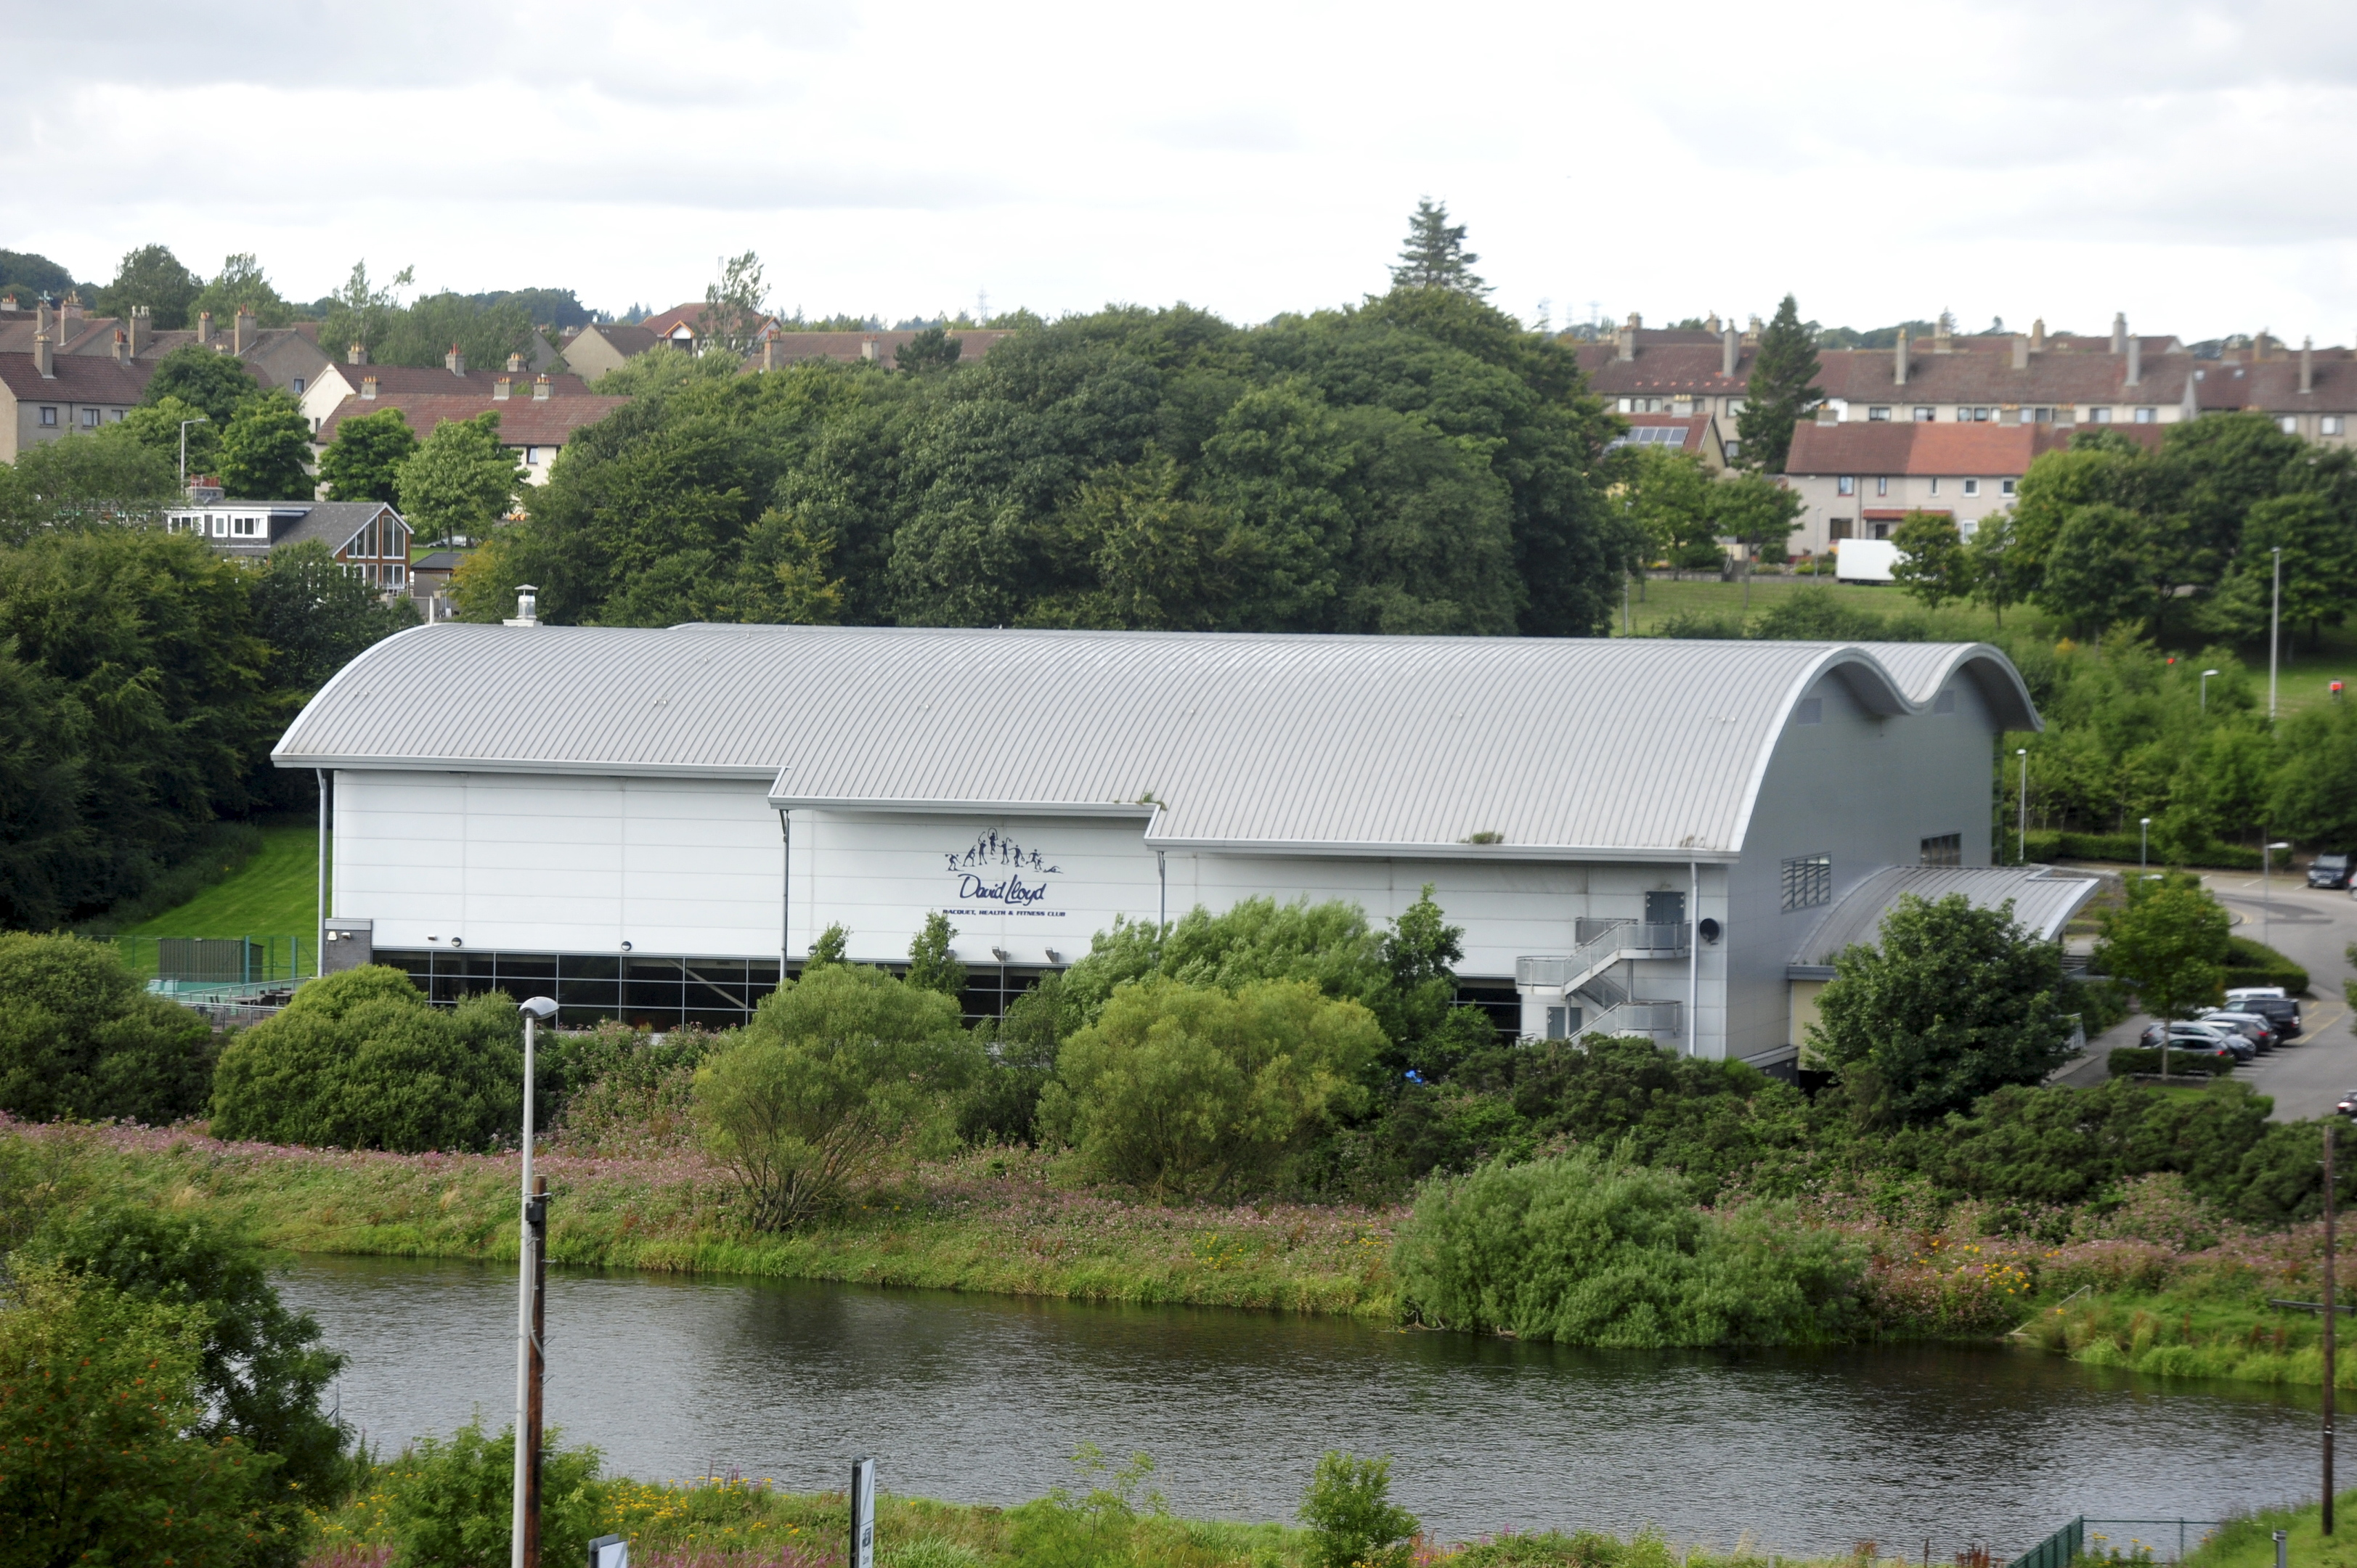 David Lloyd gym on Aberdeen's Garthdee Road is hoping to construct an open air swimming pool on the site.